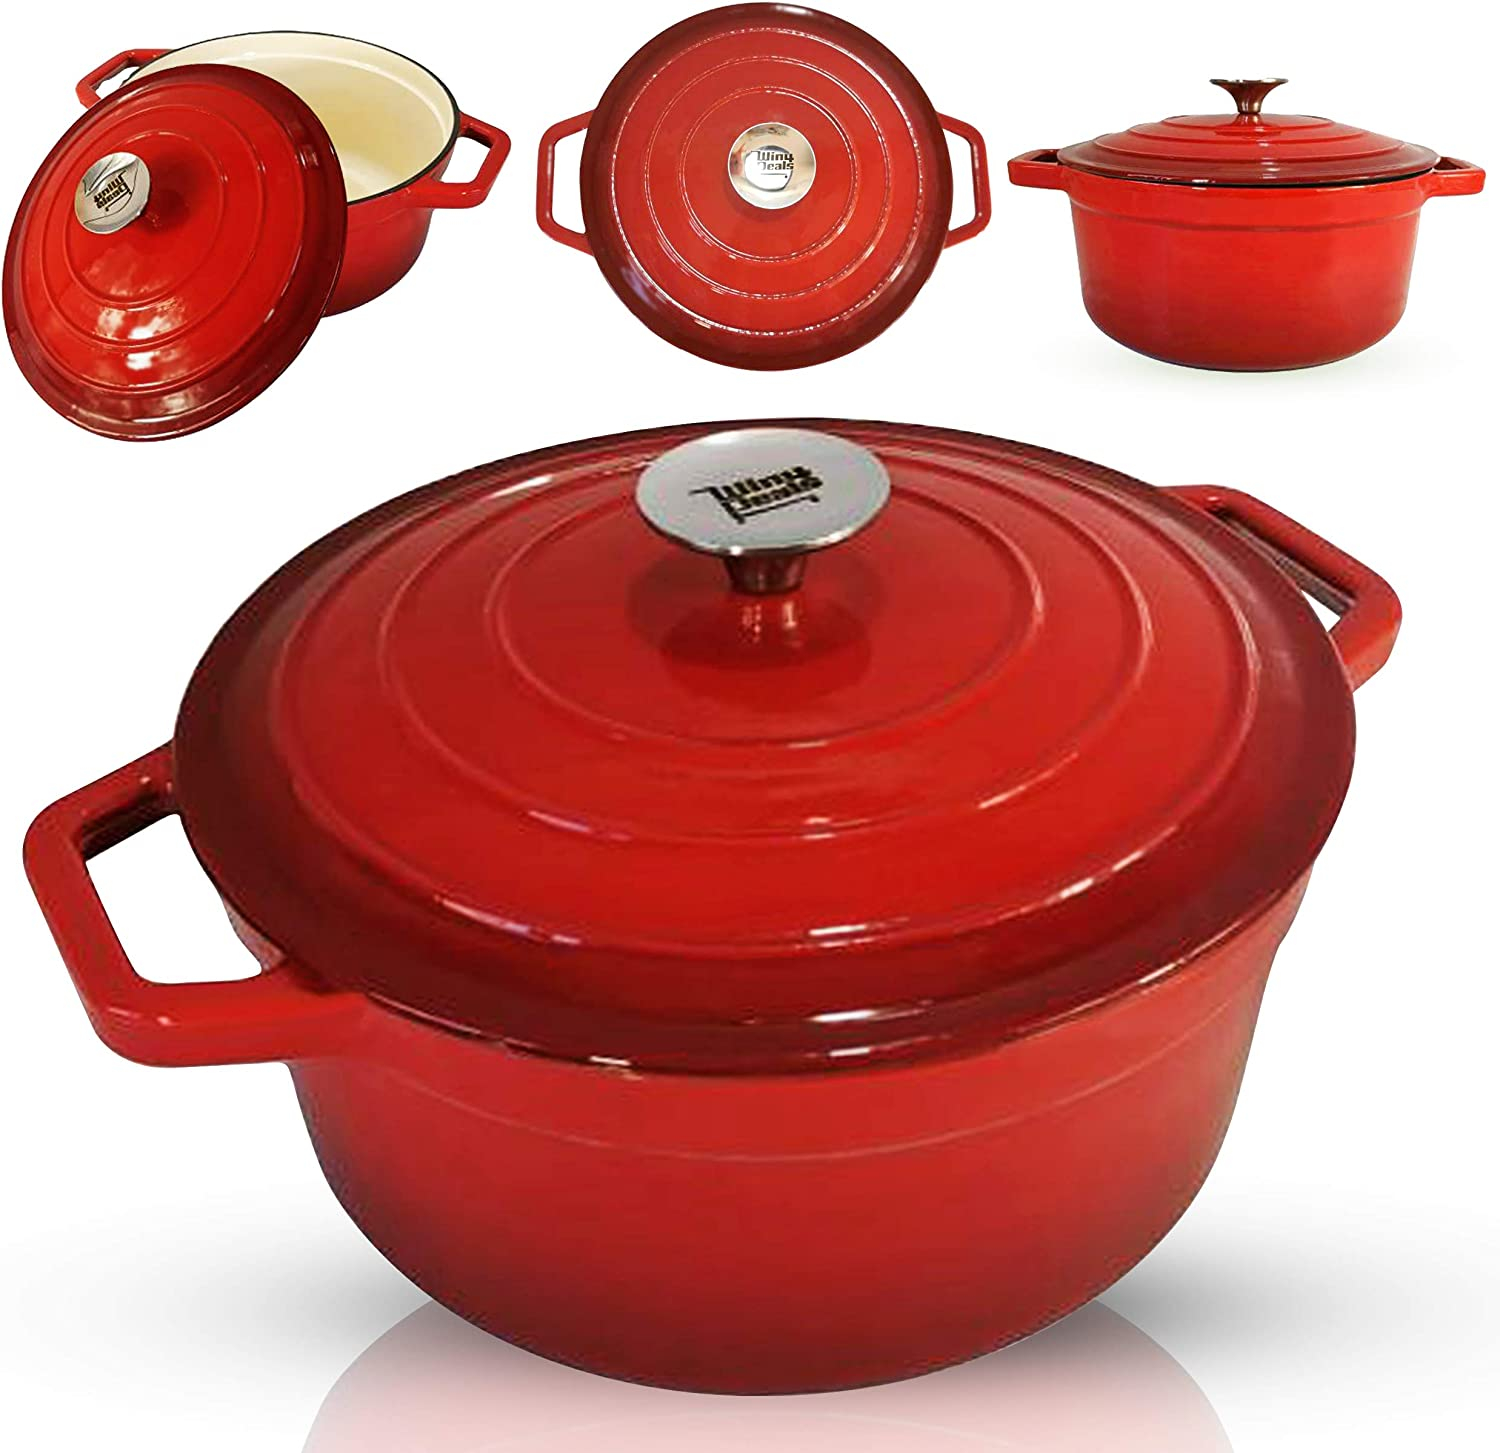 4- Quart Enameled Cast Iron Dutch Oven - Even Heat Distribution and Retention, Easy to Clean Surface, Pre-seasoned Cast Iron Enameled Cookware, Healthy Cooking, Red